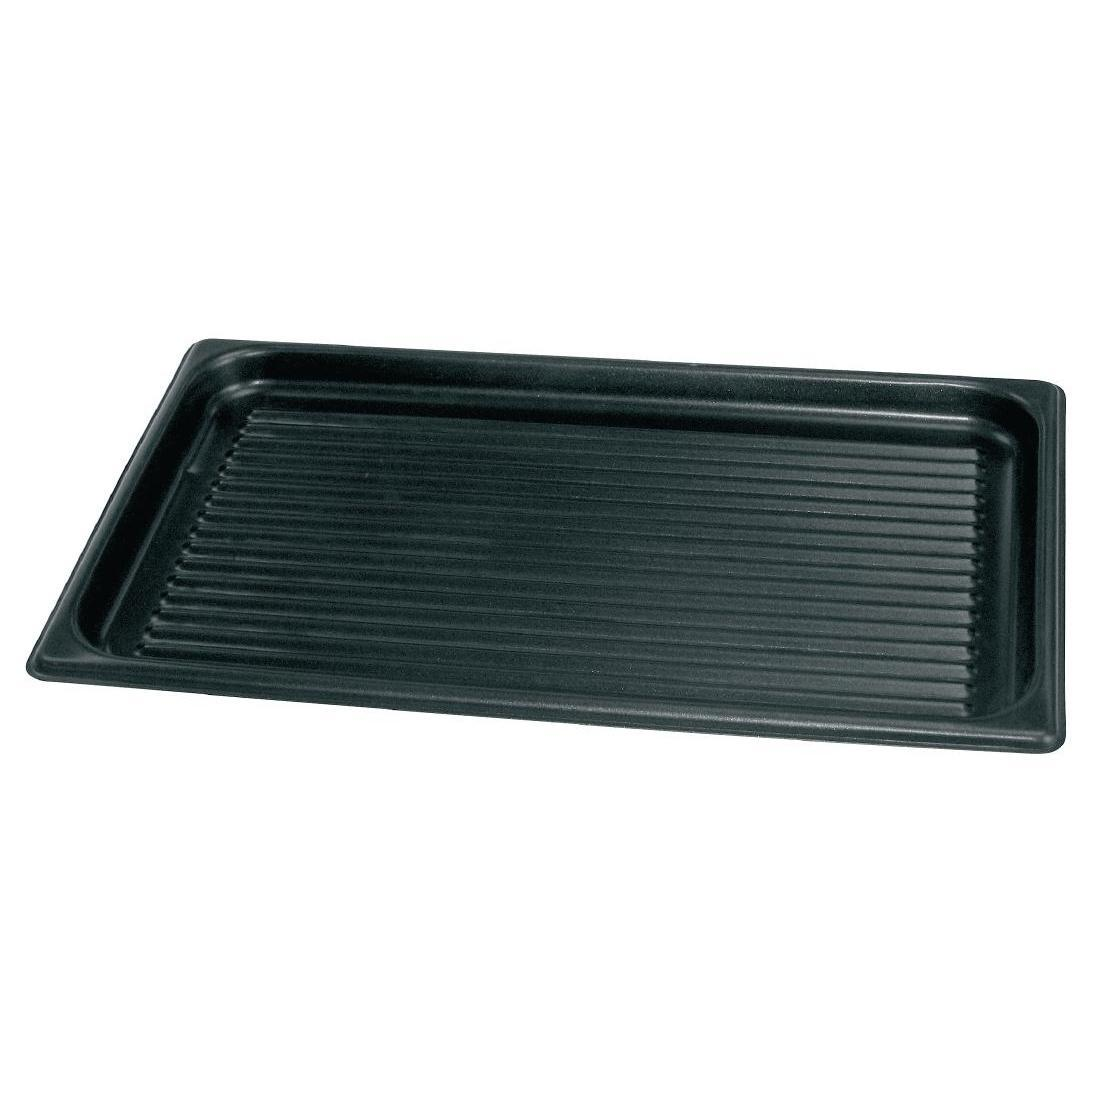 Vogue Ridged Non Stick Baking Sheet - S372